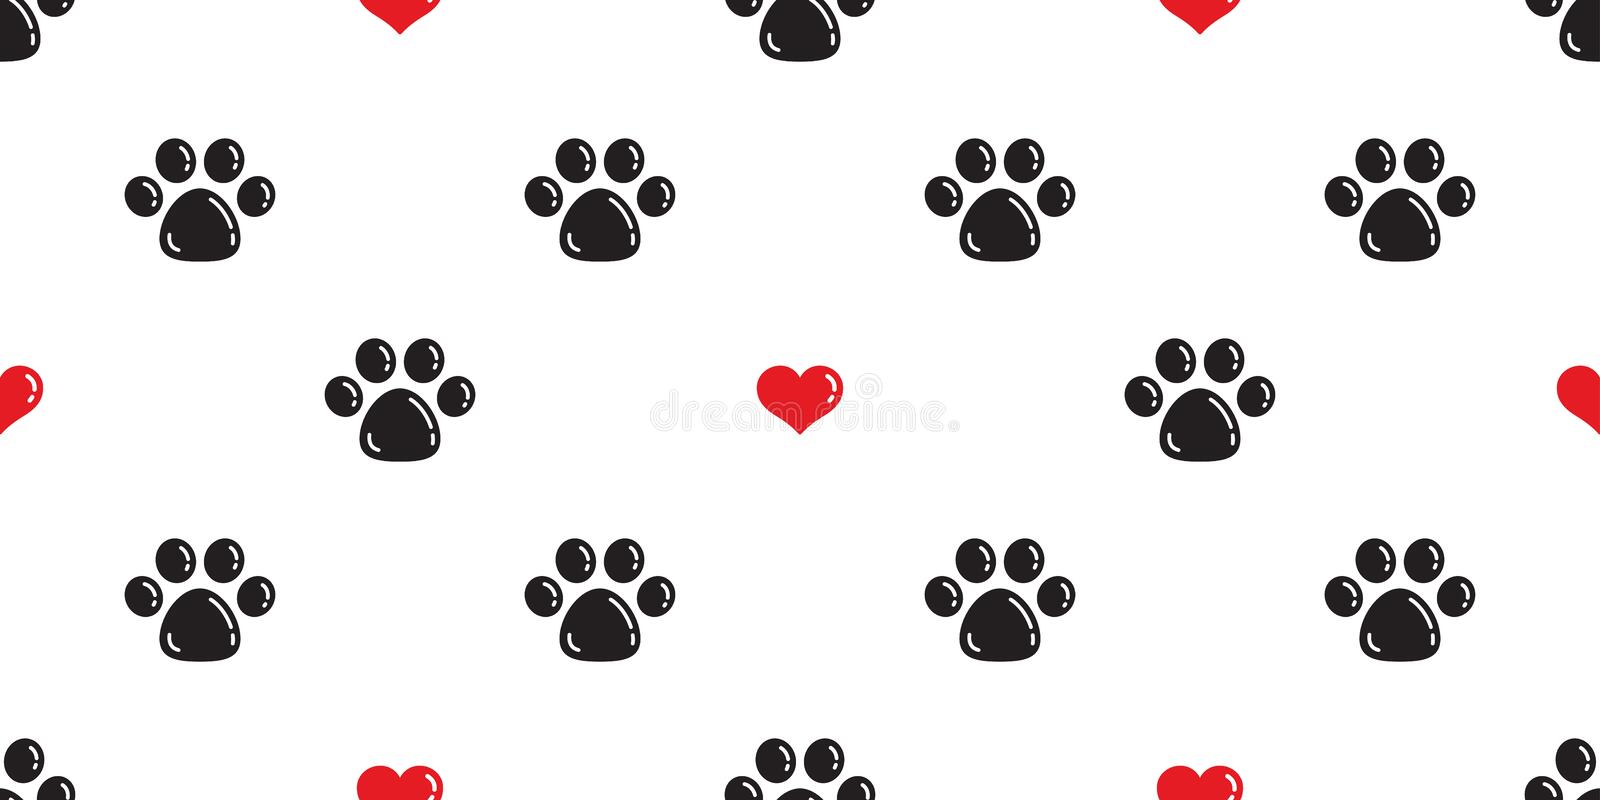 Dog Paw Seamless pattern vector heart valentine isolated Cat Paw footprint cartoon wallpaper background illustration stock illustration